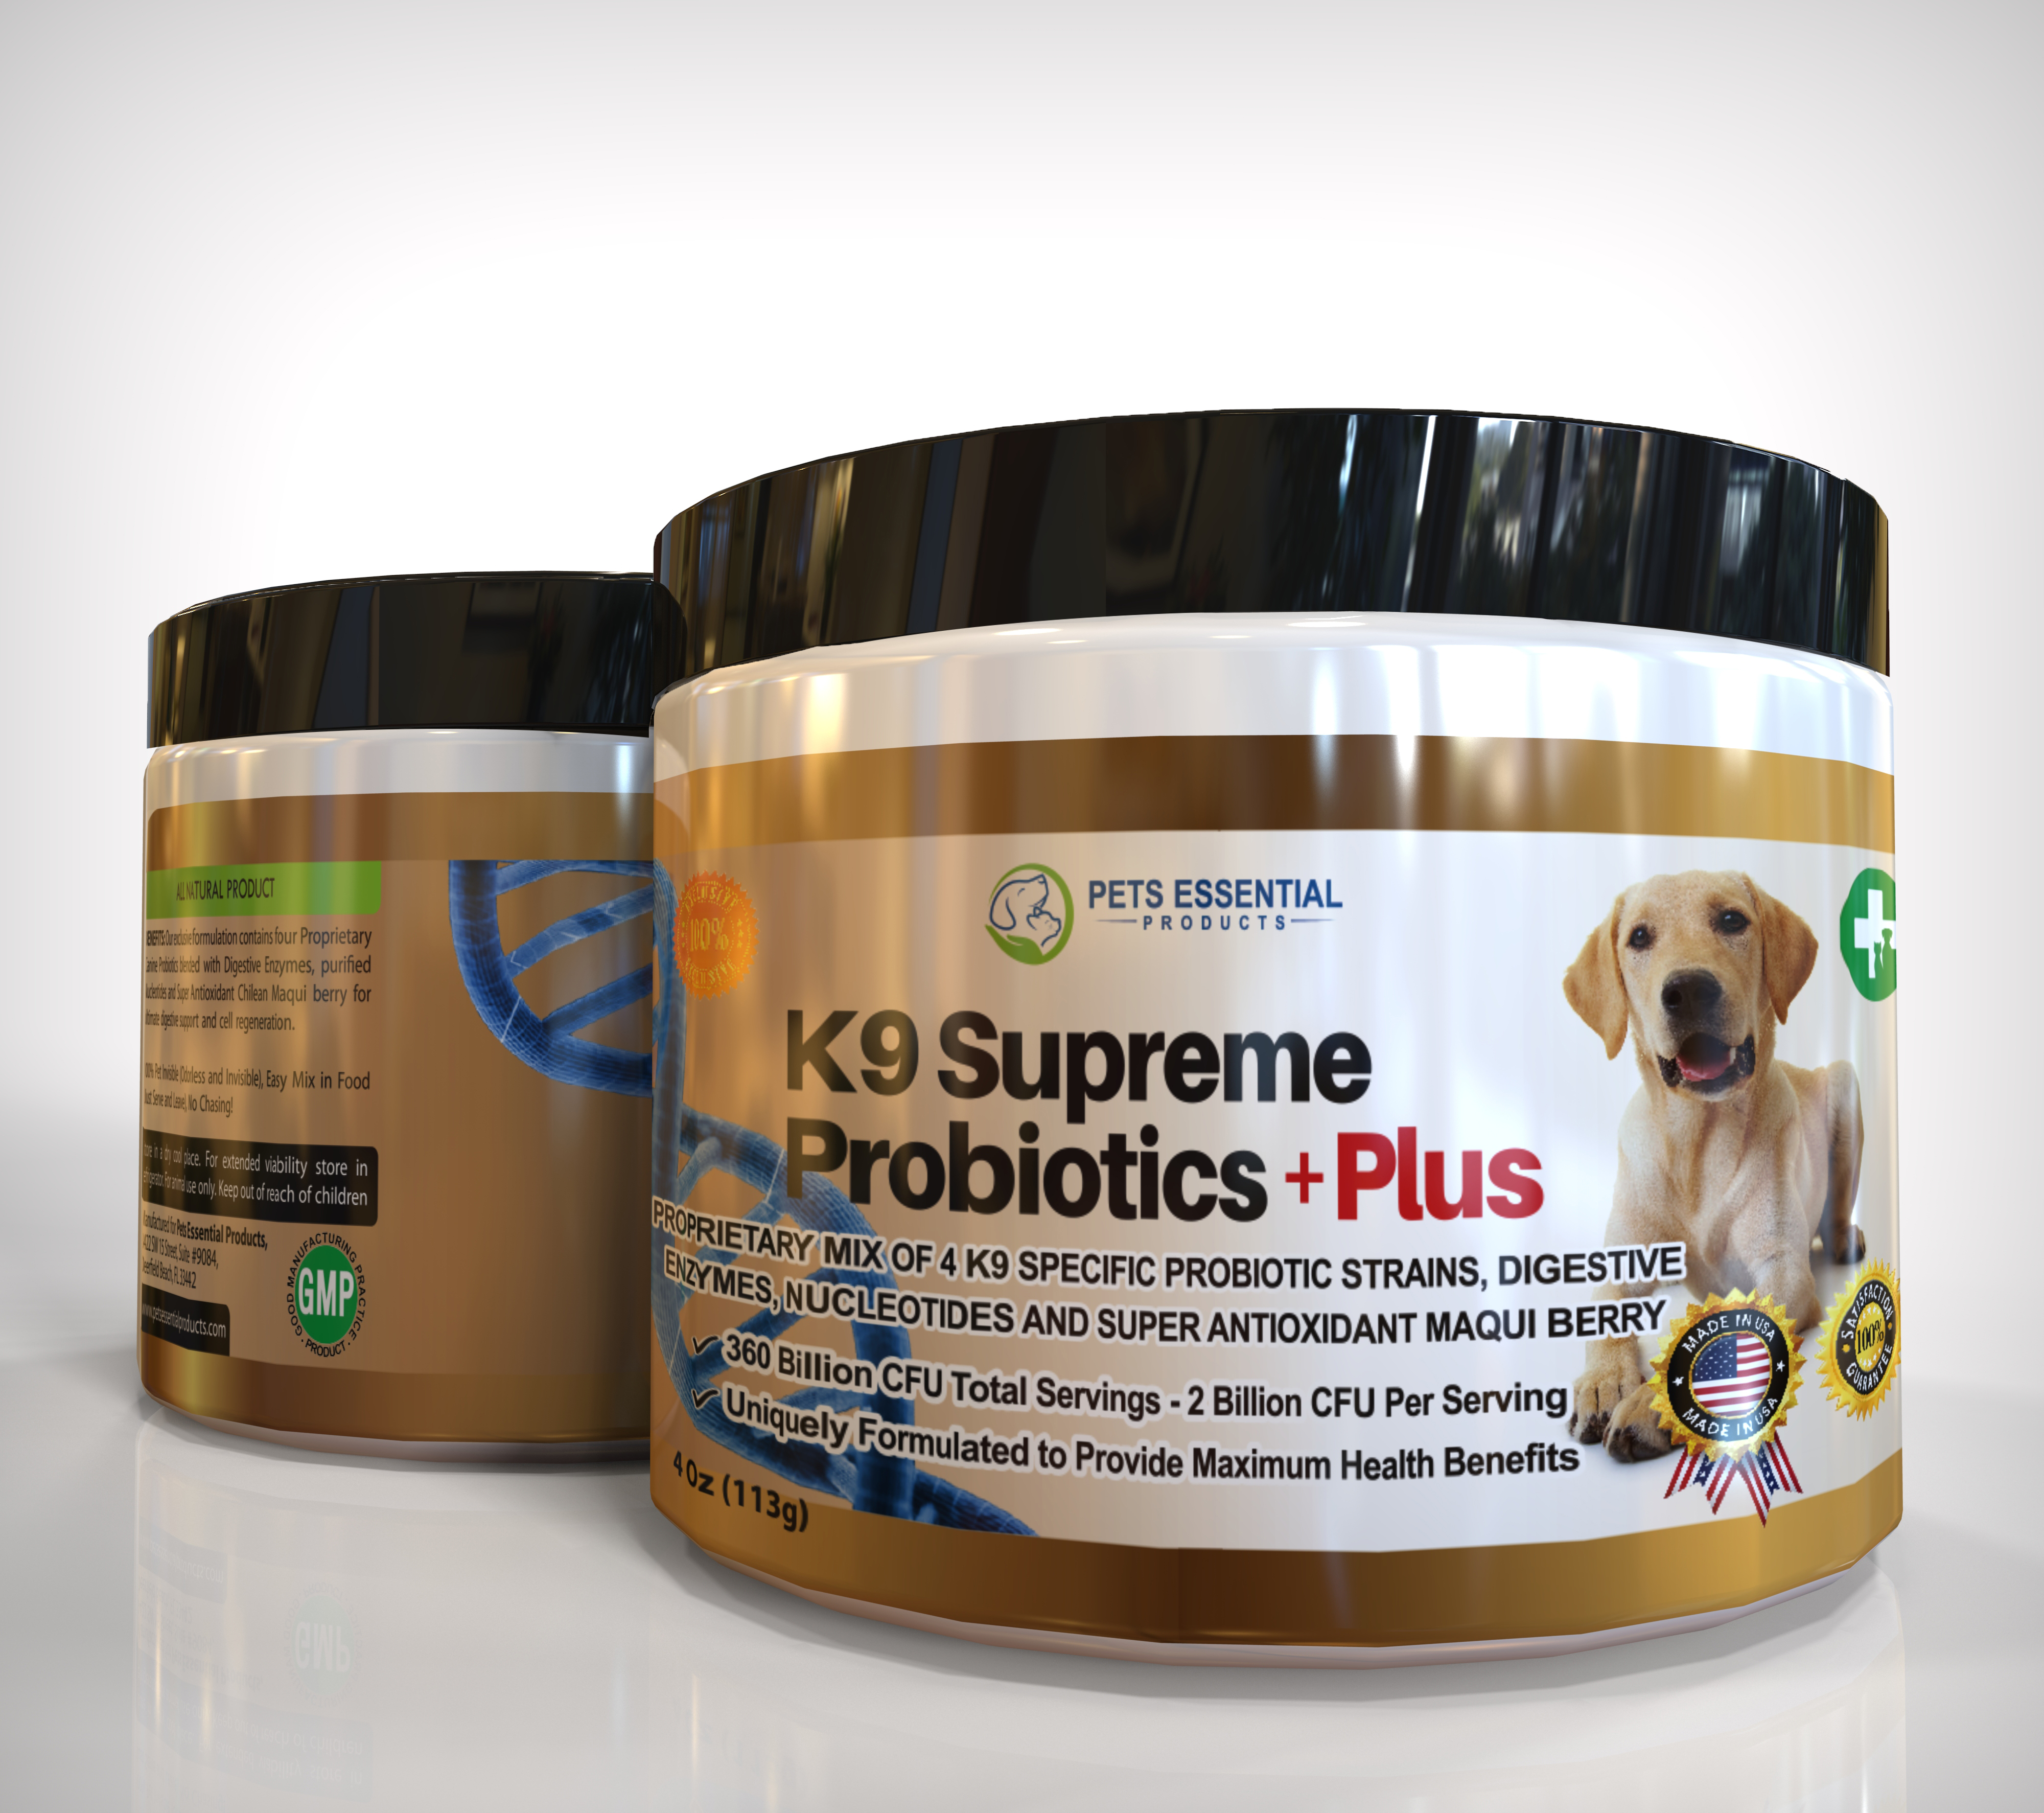 k9 supreme probiotics + plus for dogs dog puppy puppies